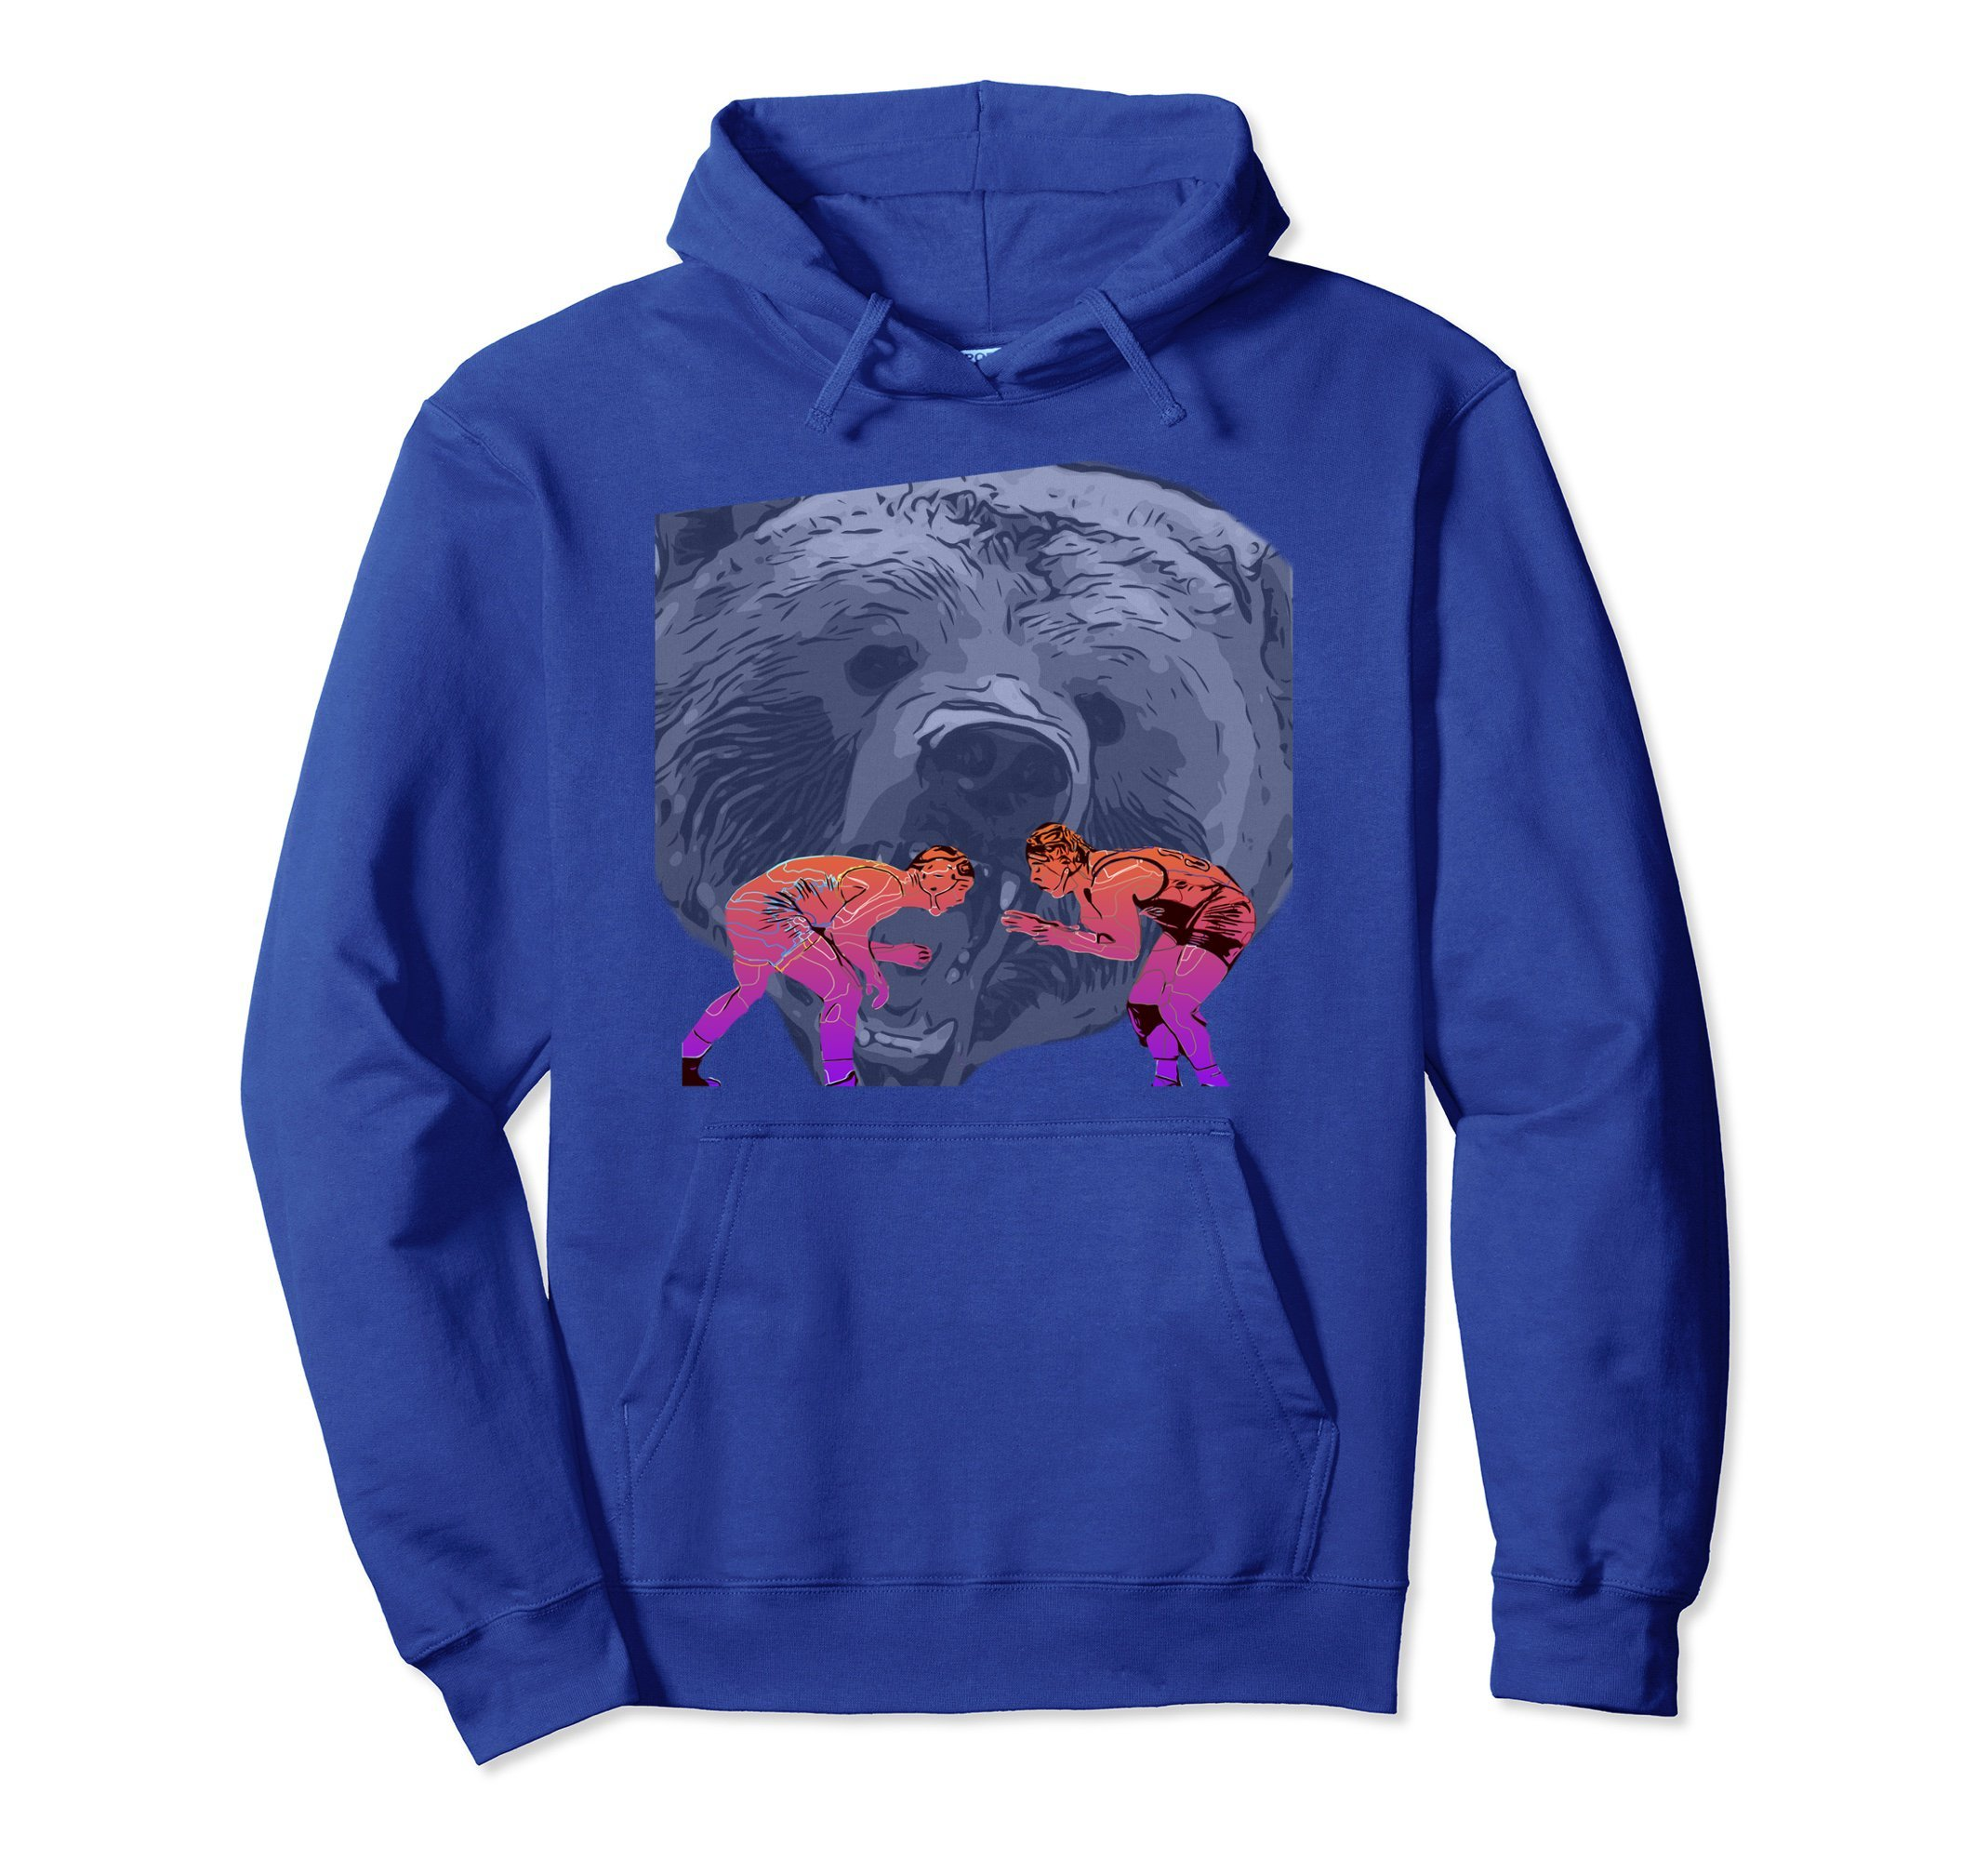 Unisex Wrestling Grizzly Bear Hoodie Large Royal Blue